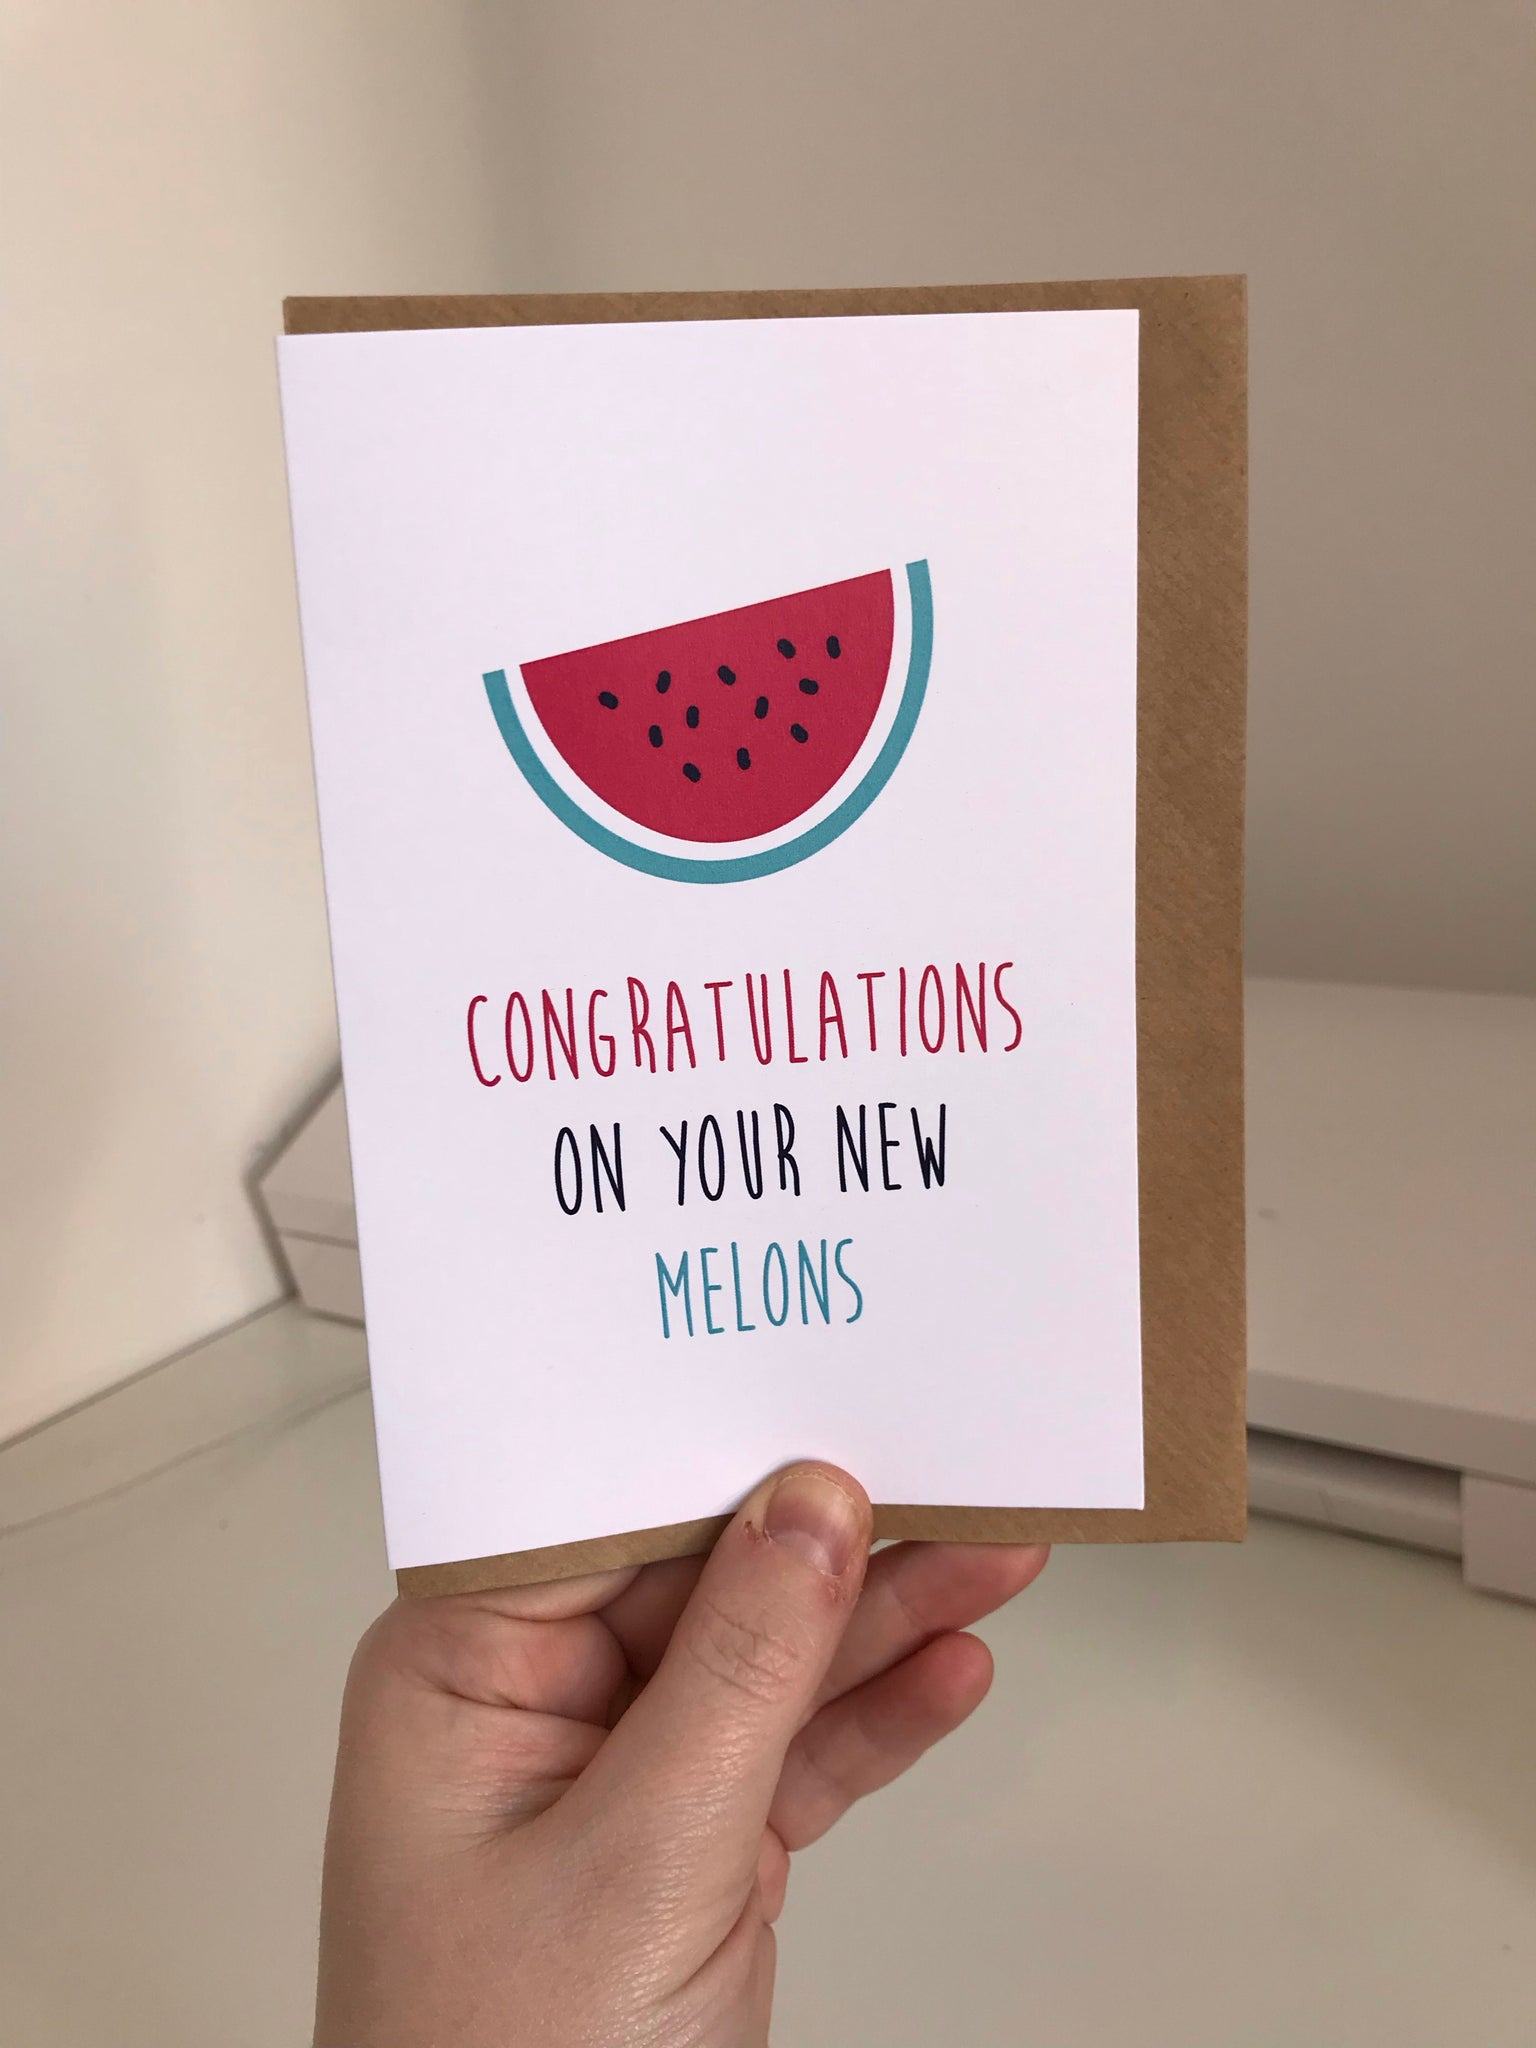 Congratulations On Your New Melons - Mono - 6x4 Greetings Card With Envelope - L&O Designs